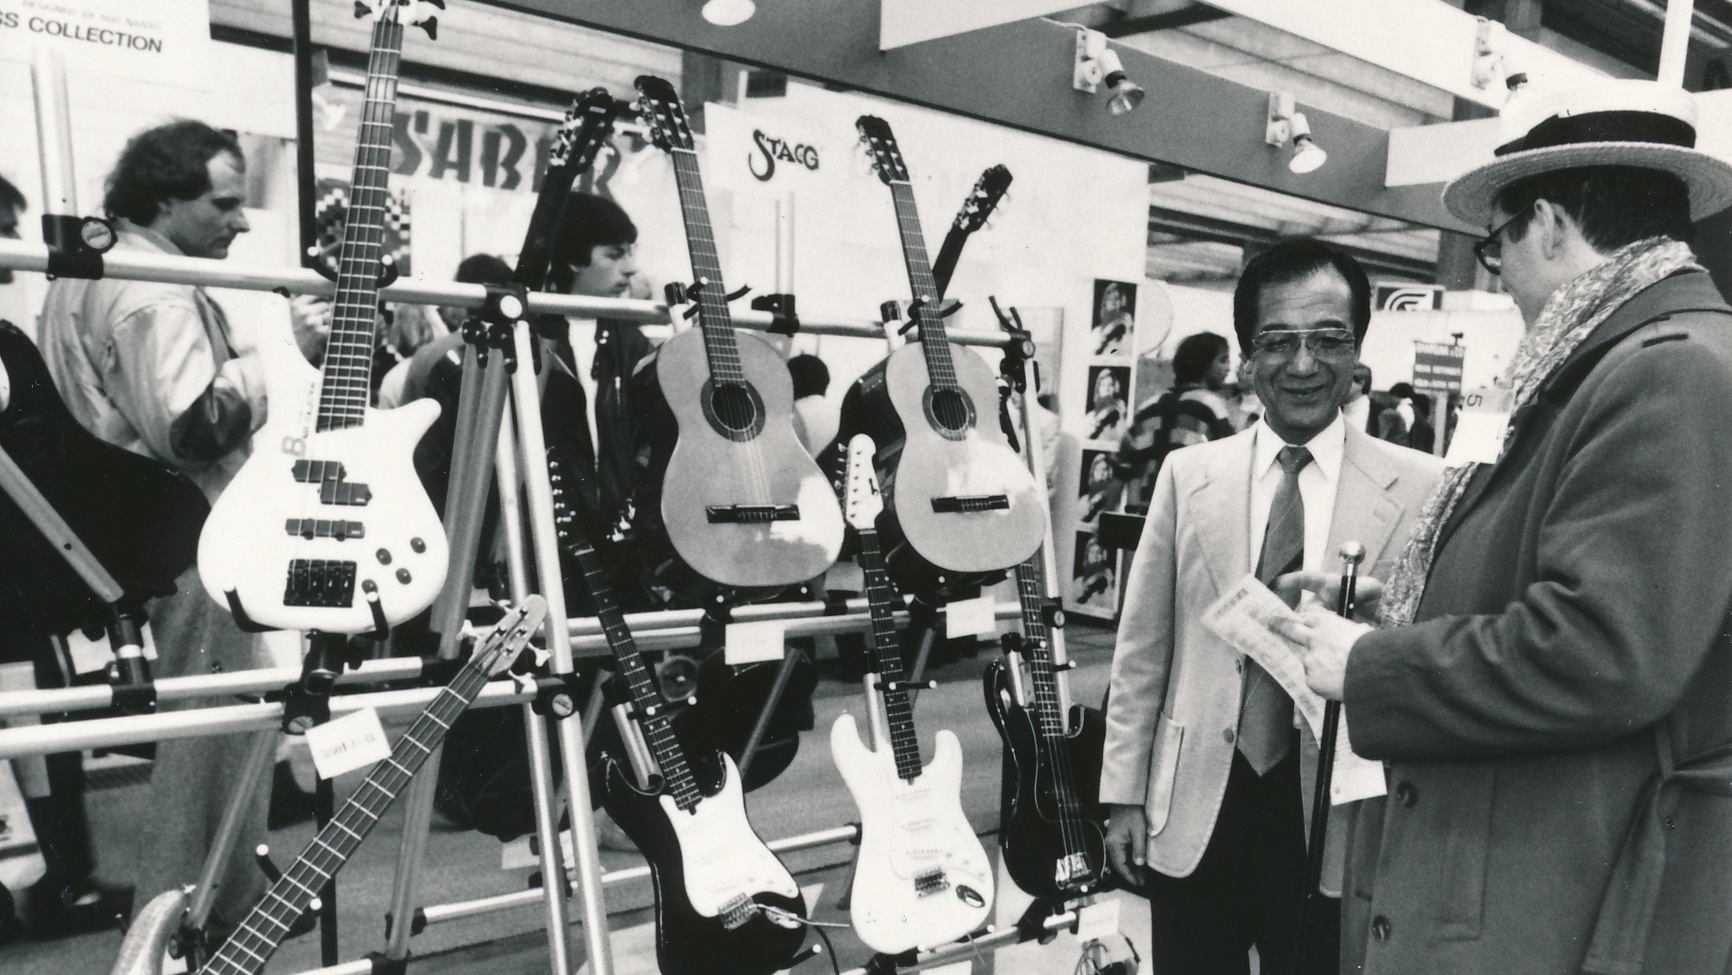 Musikmesse in the 1980s